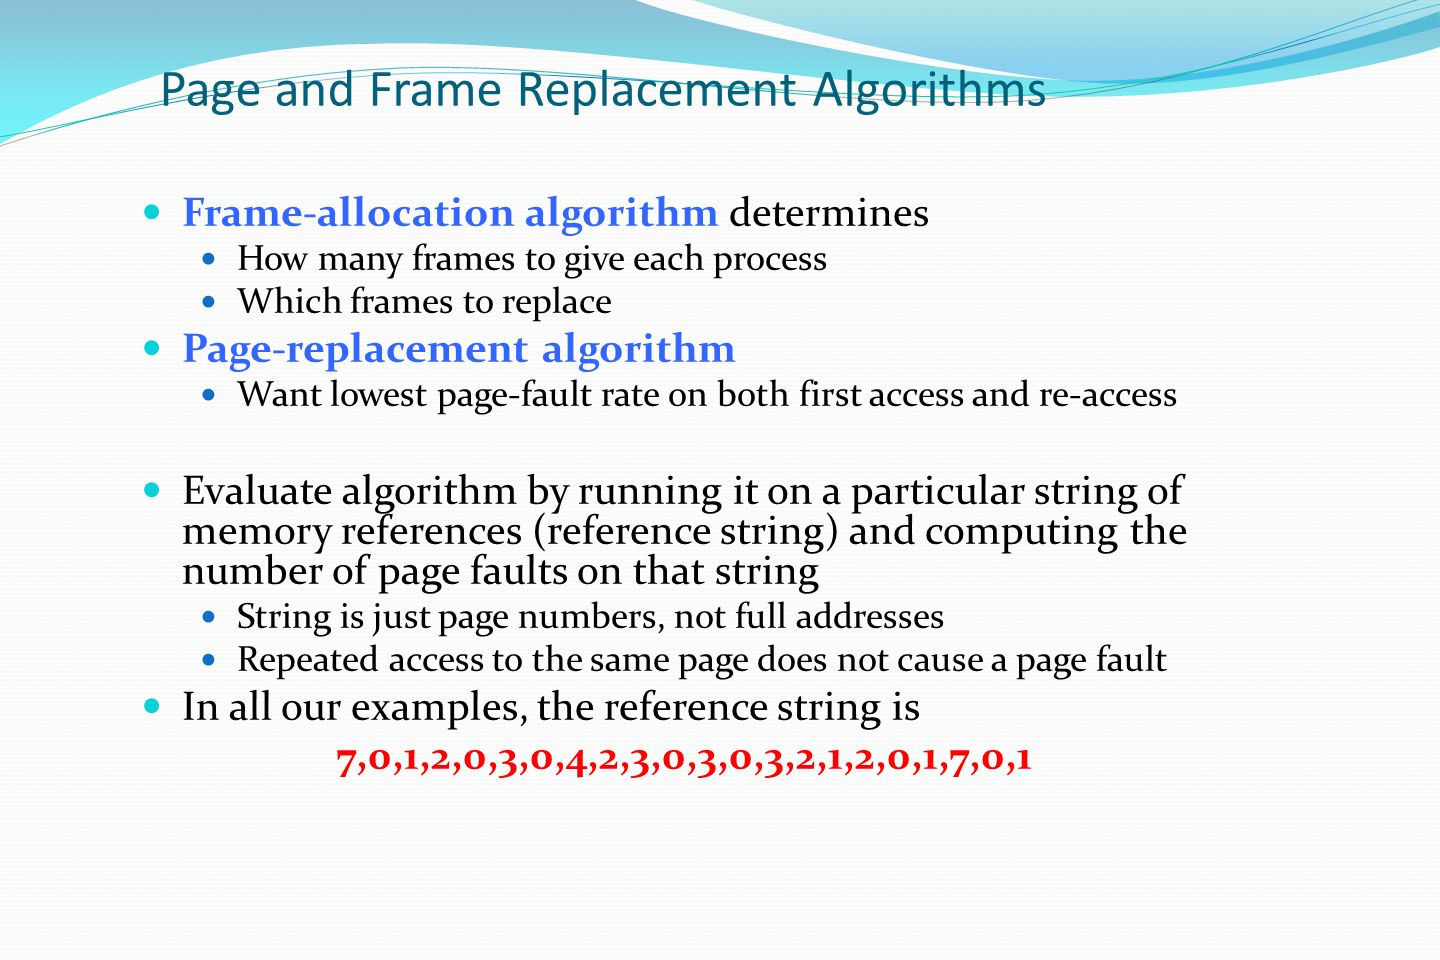 Page and Frame Replacement Algorithms